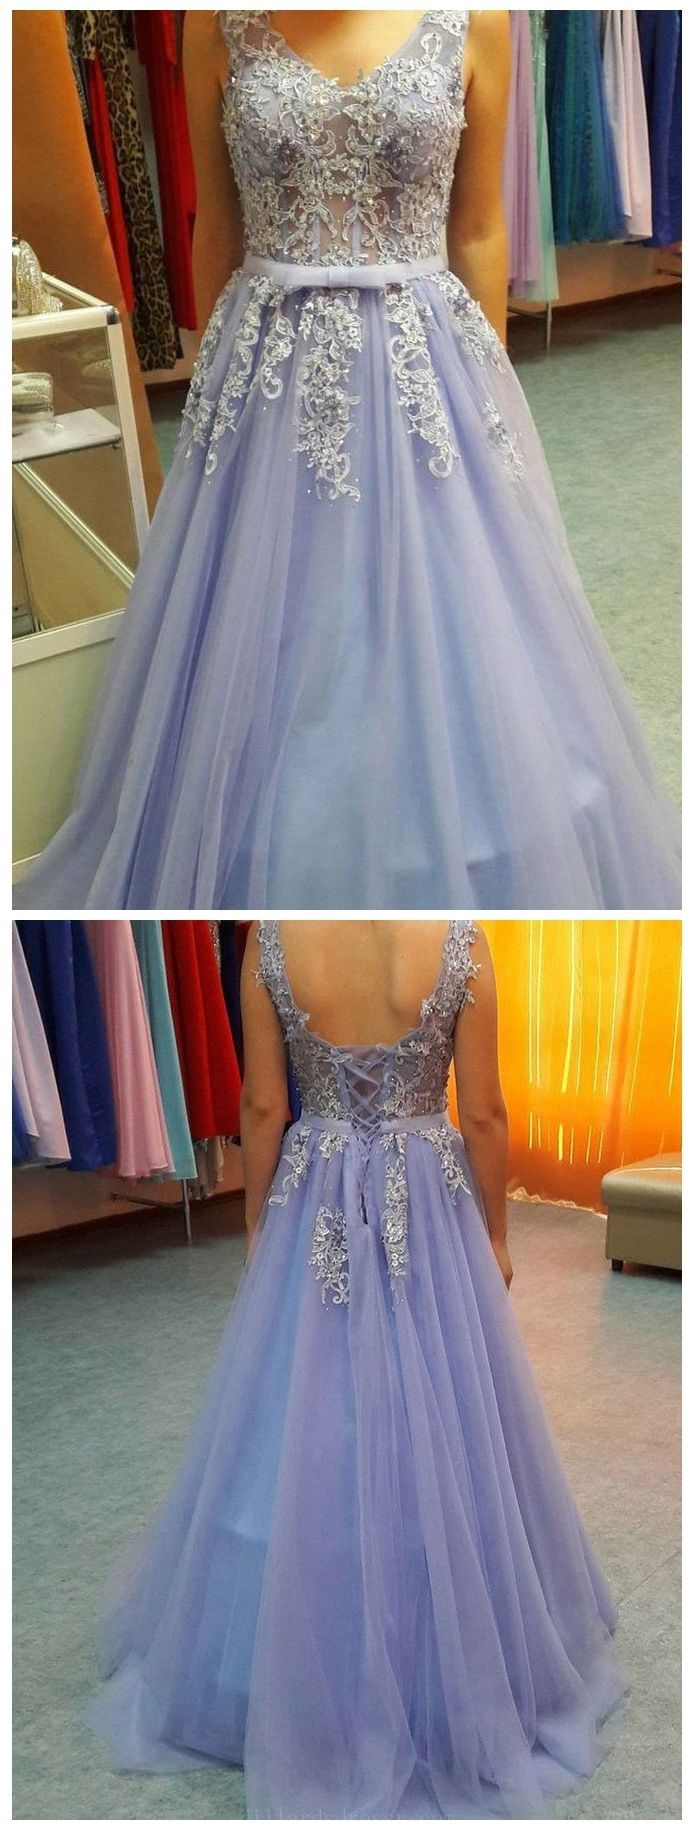 Discount outstanding prom dresses aline ball gown prom dresses